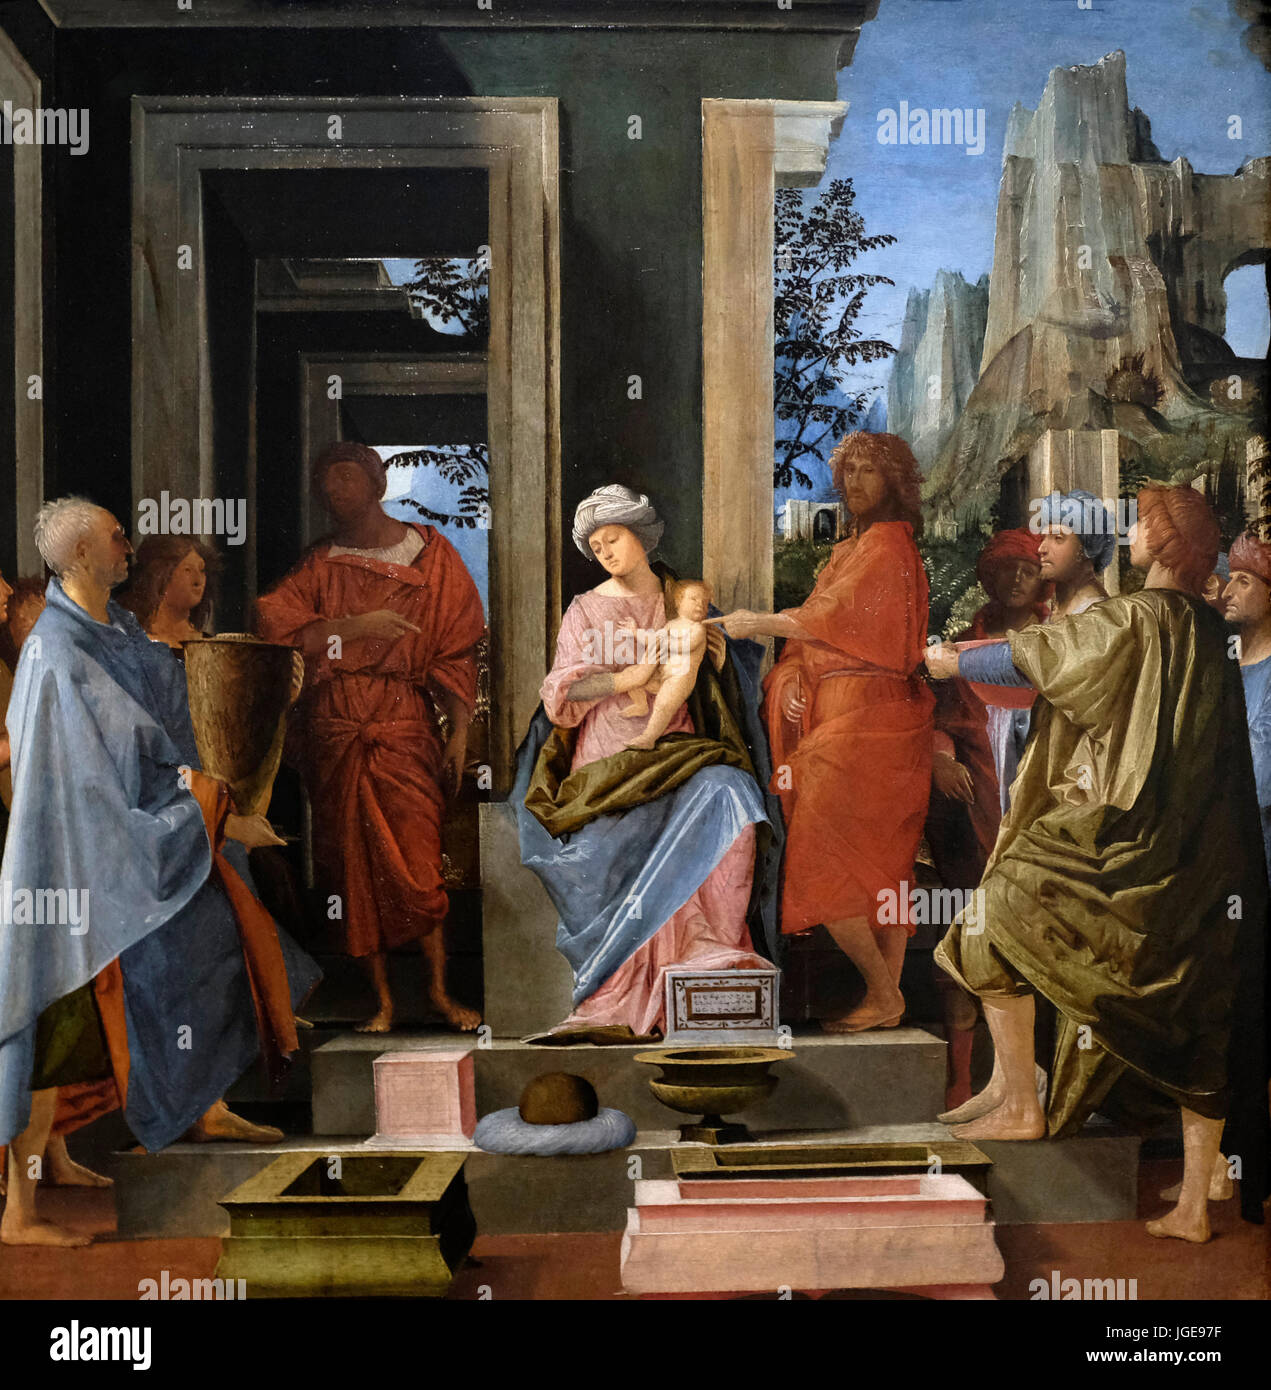 The Adoration of the Kings, Bramantino, circa 1500 - Stock Image